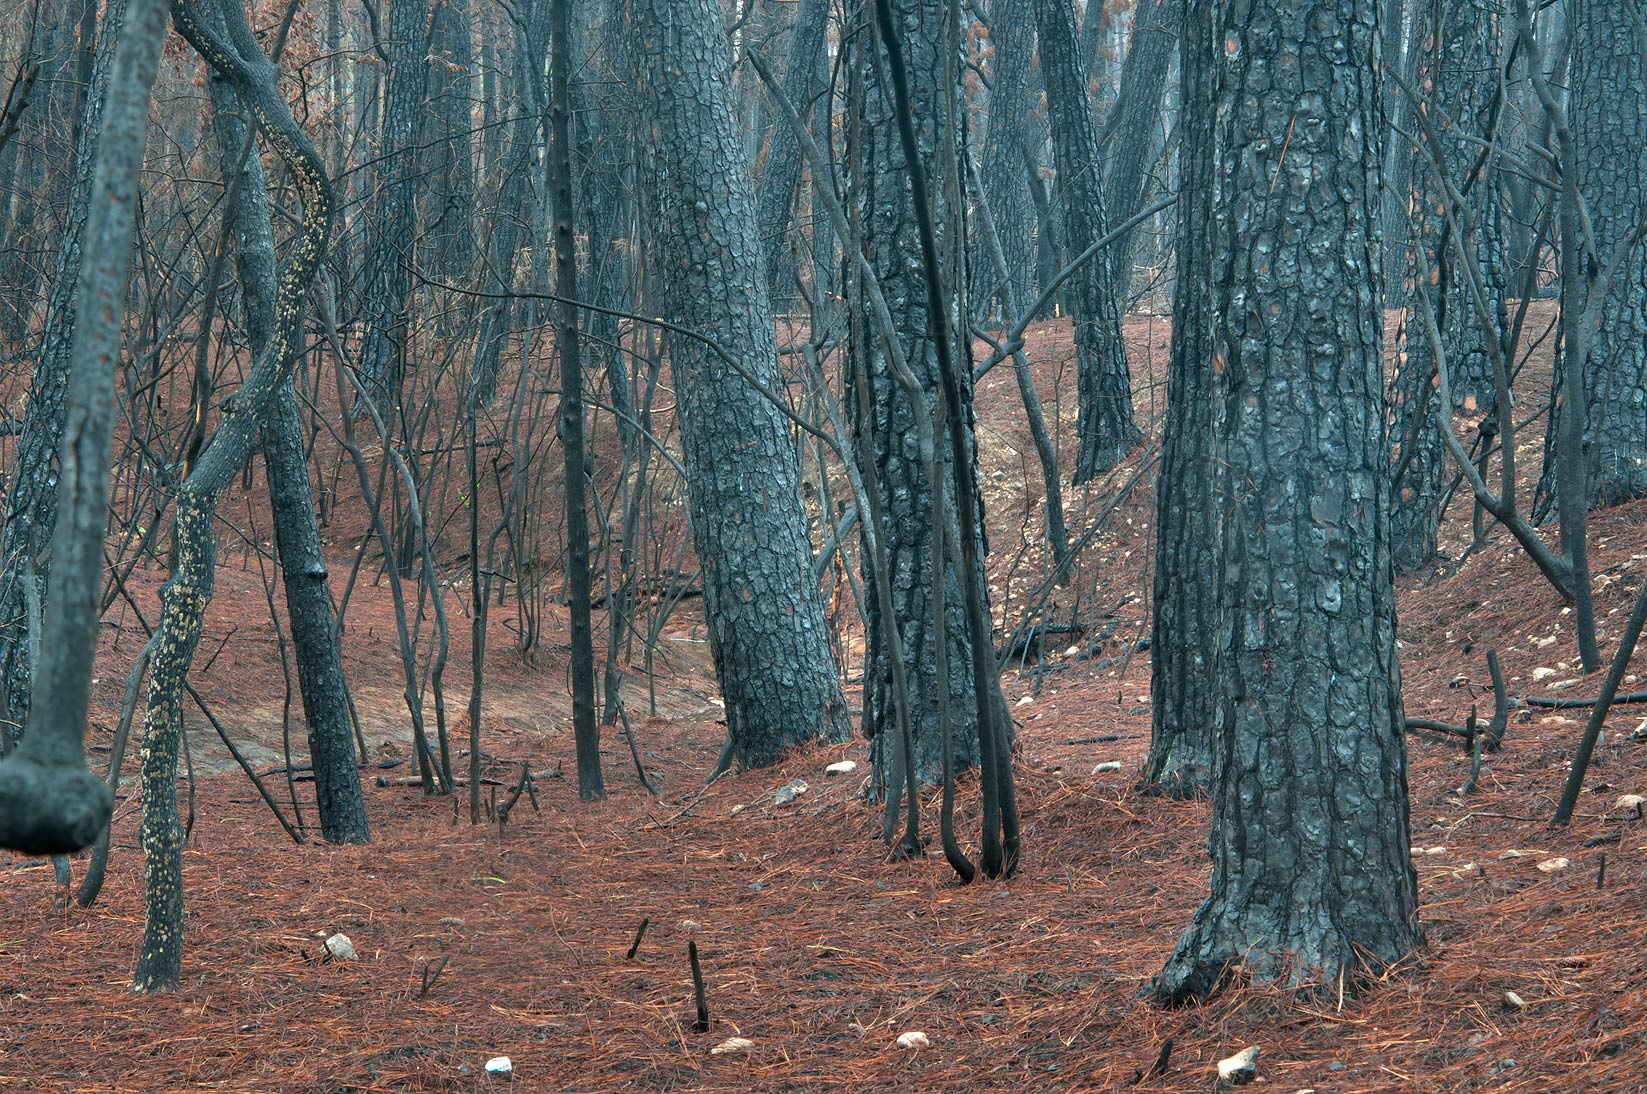 Burnt pine forest near Scenic Overlook Trail in Bastrop State Park. Bastrop, Texas